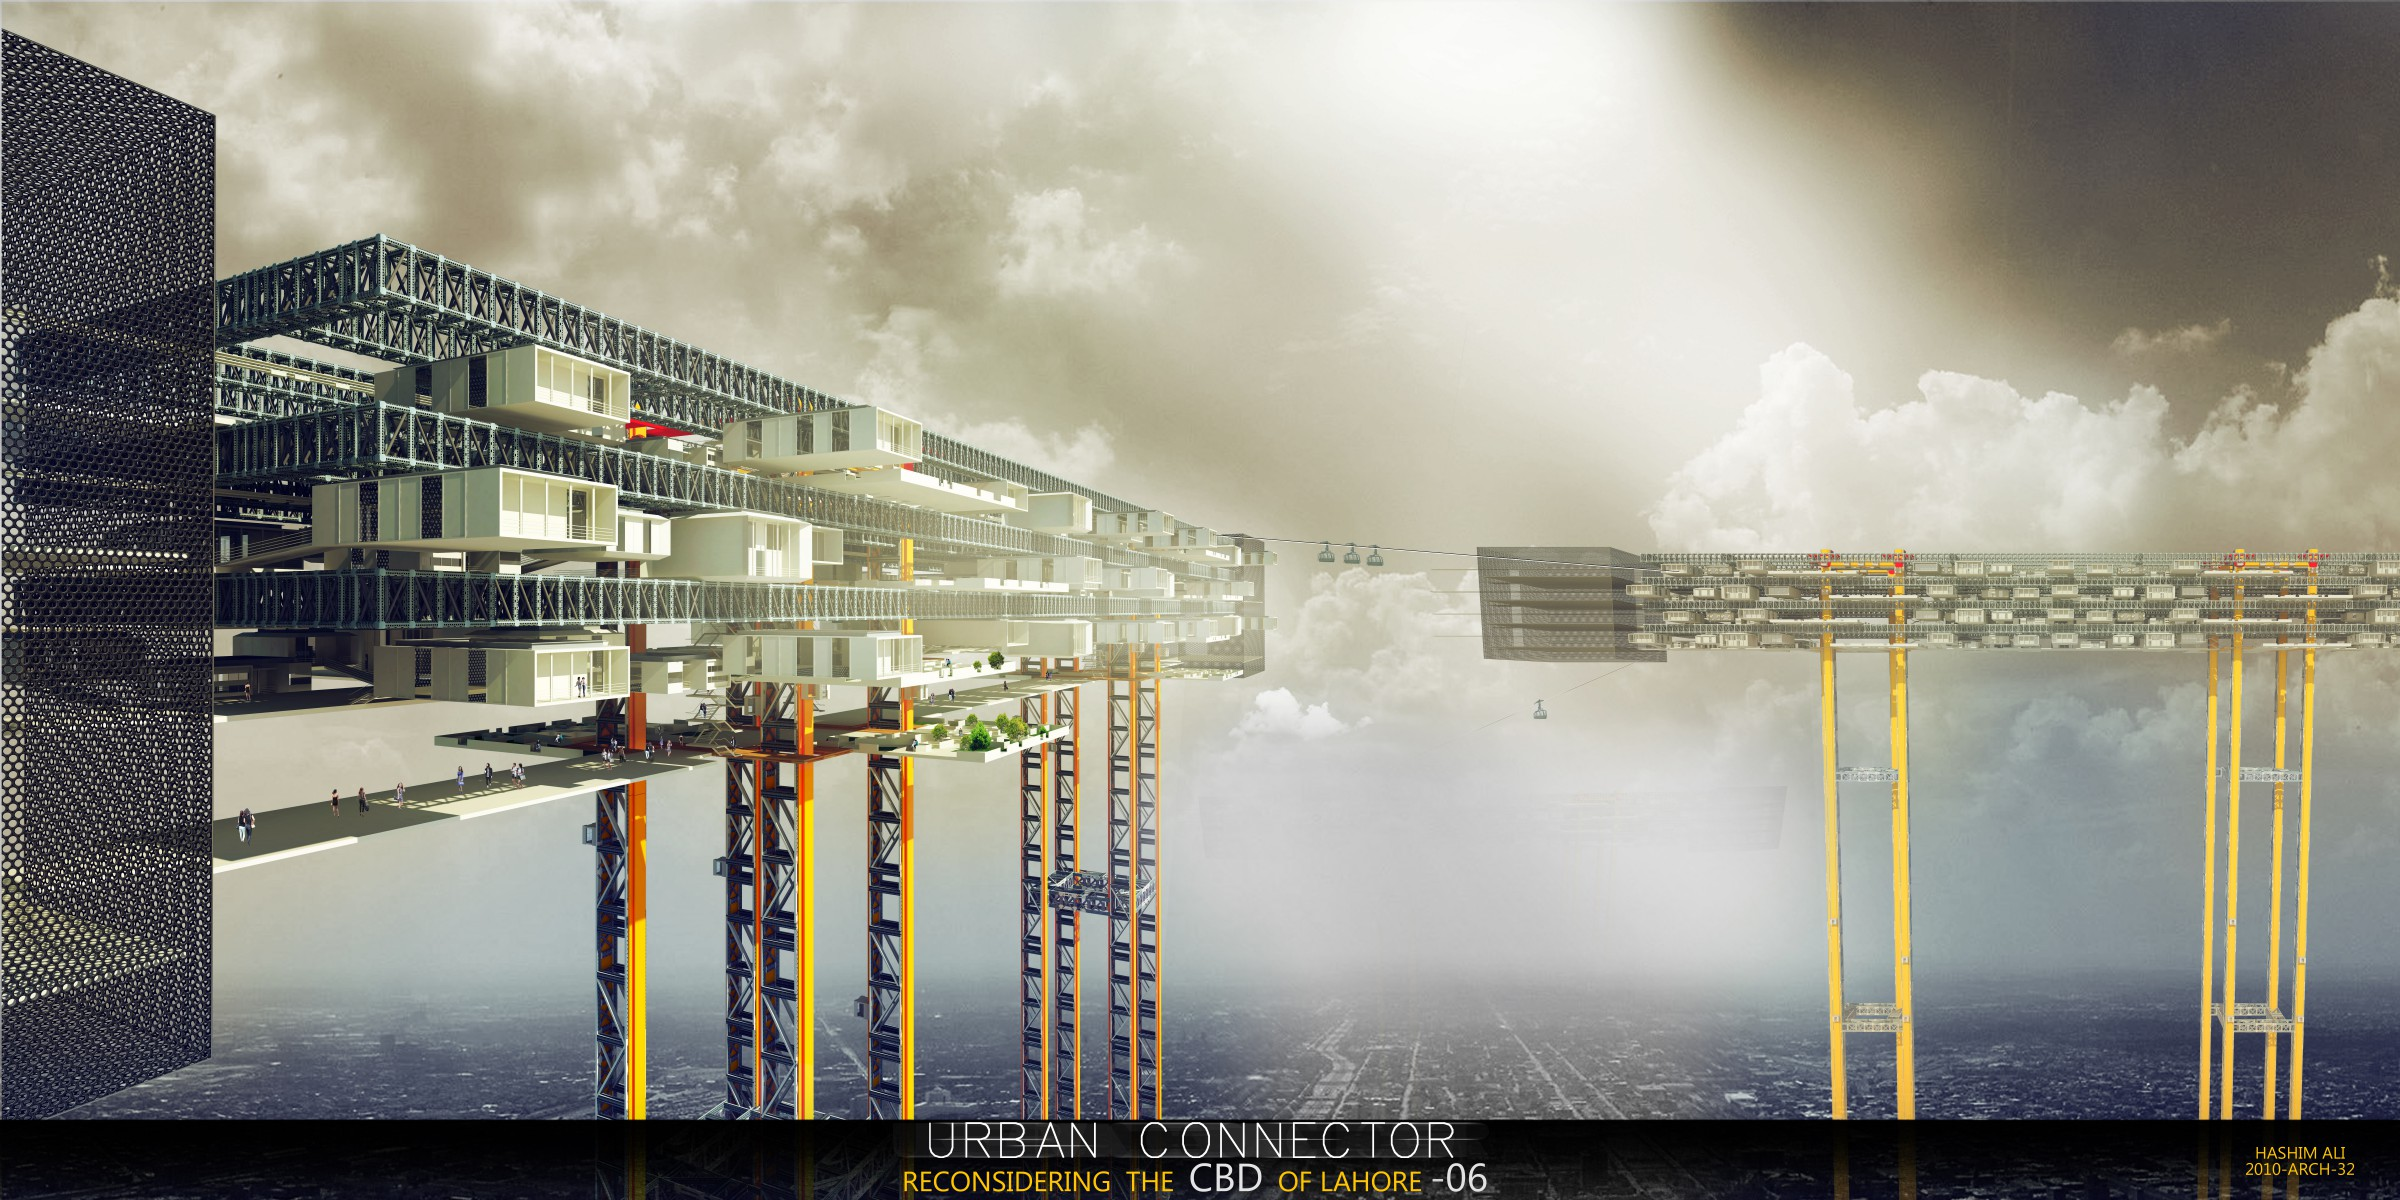 Future Cities - Homes Or Cities In Air